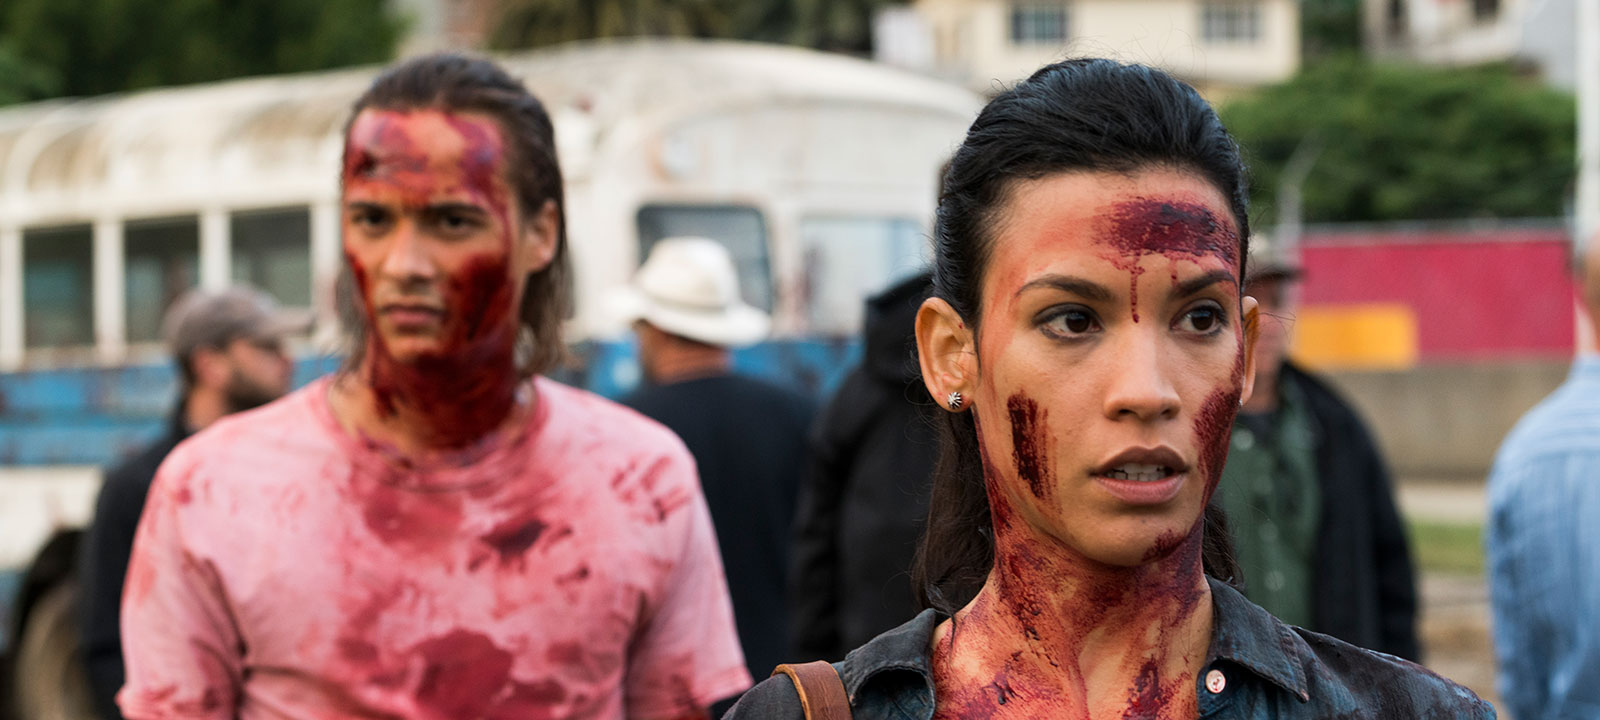 fear-the-walking-dead-episode-209-luciana-garcia-800×600-interview